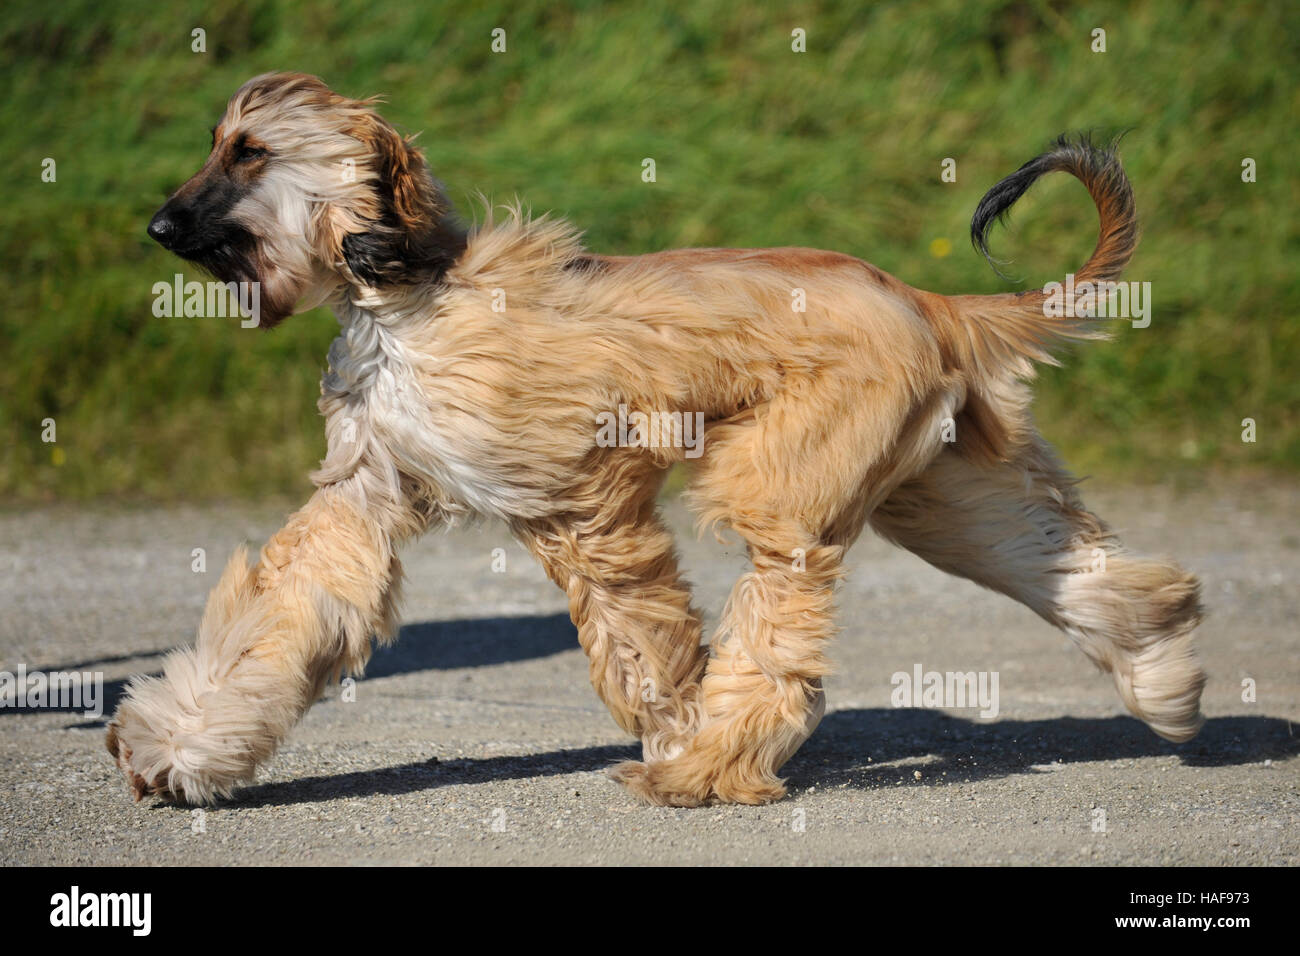 trotting afghan puppy - Stock Image